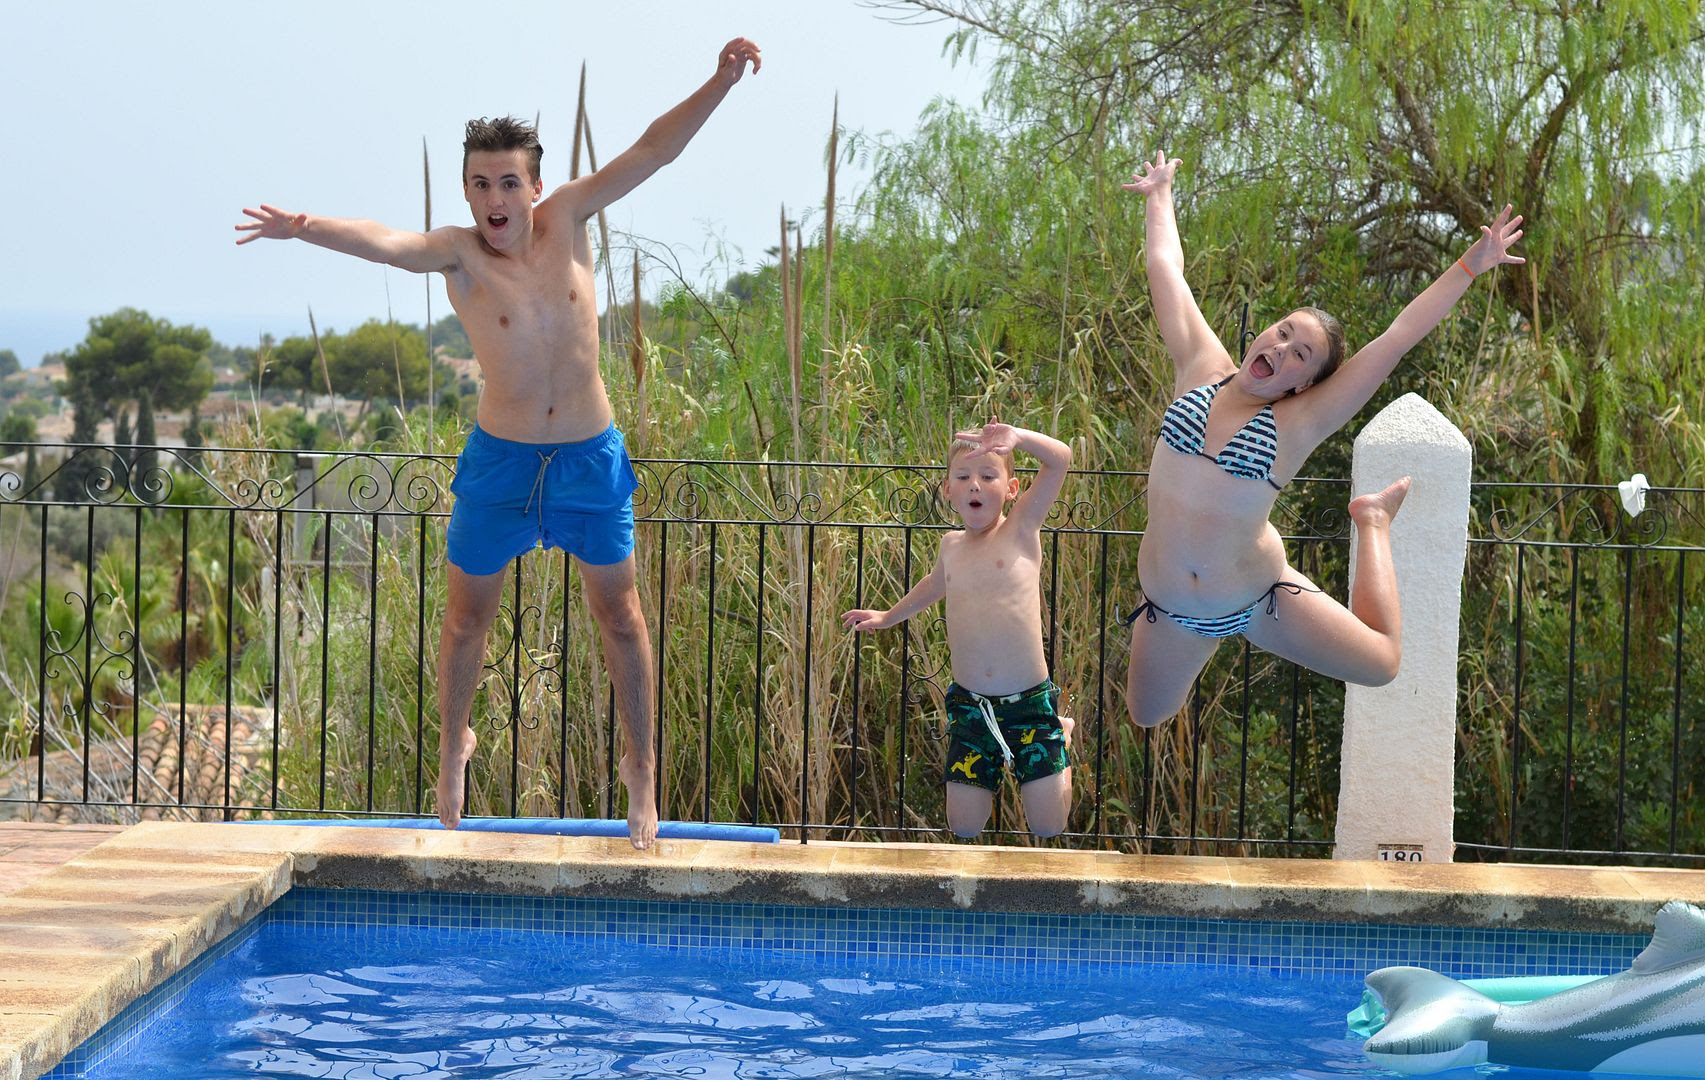 photo kids jumping in pool_zpsco61g8es.jpg